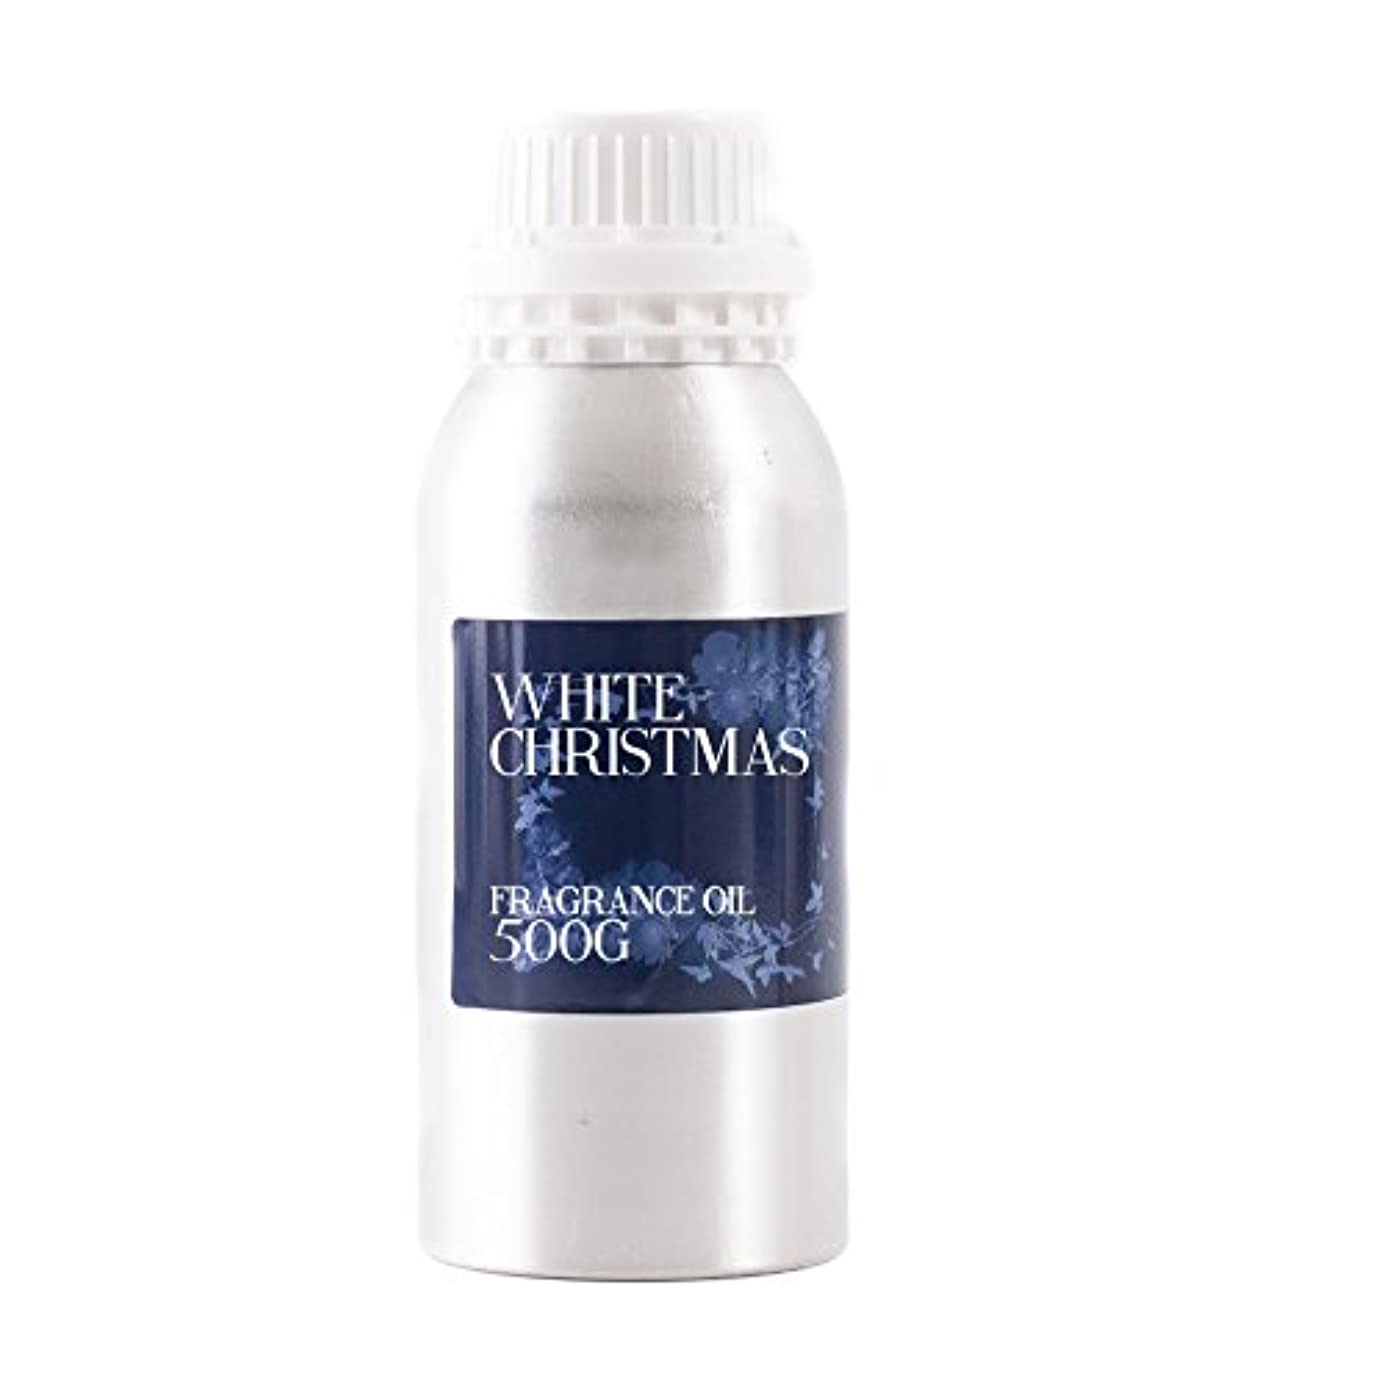 散逸逃れる影響力のあるMystic Moments | White Christmas Fragrance Oil - 500g